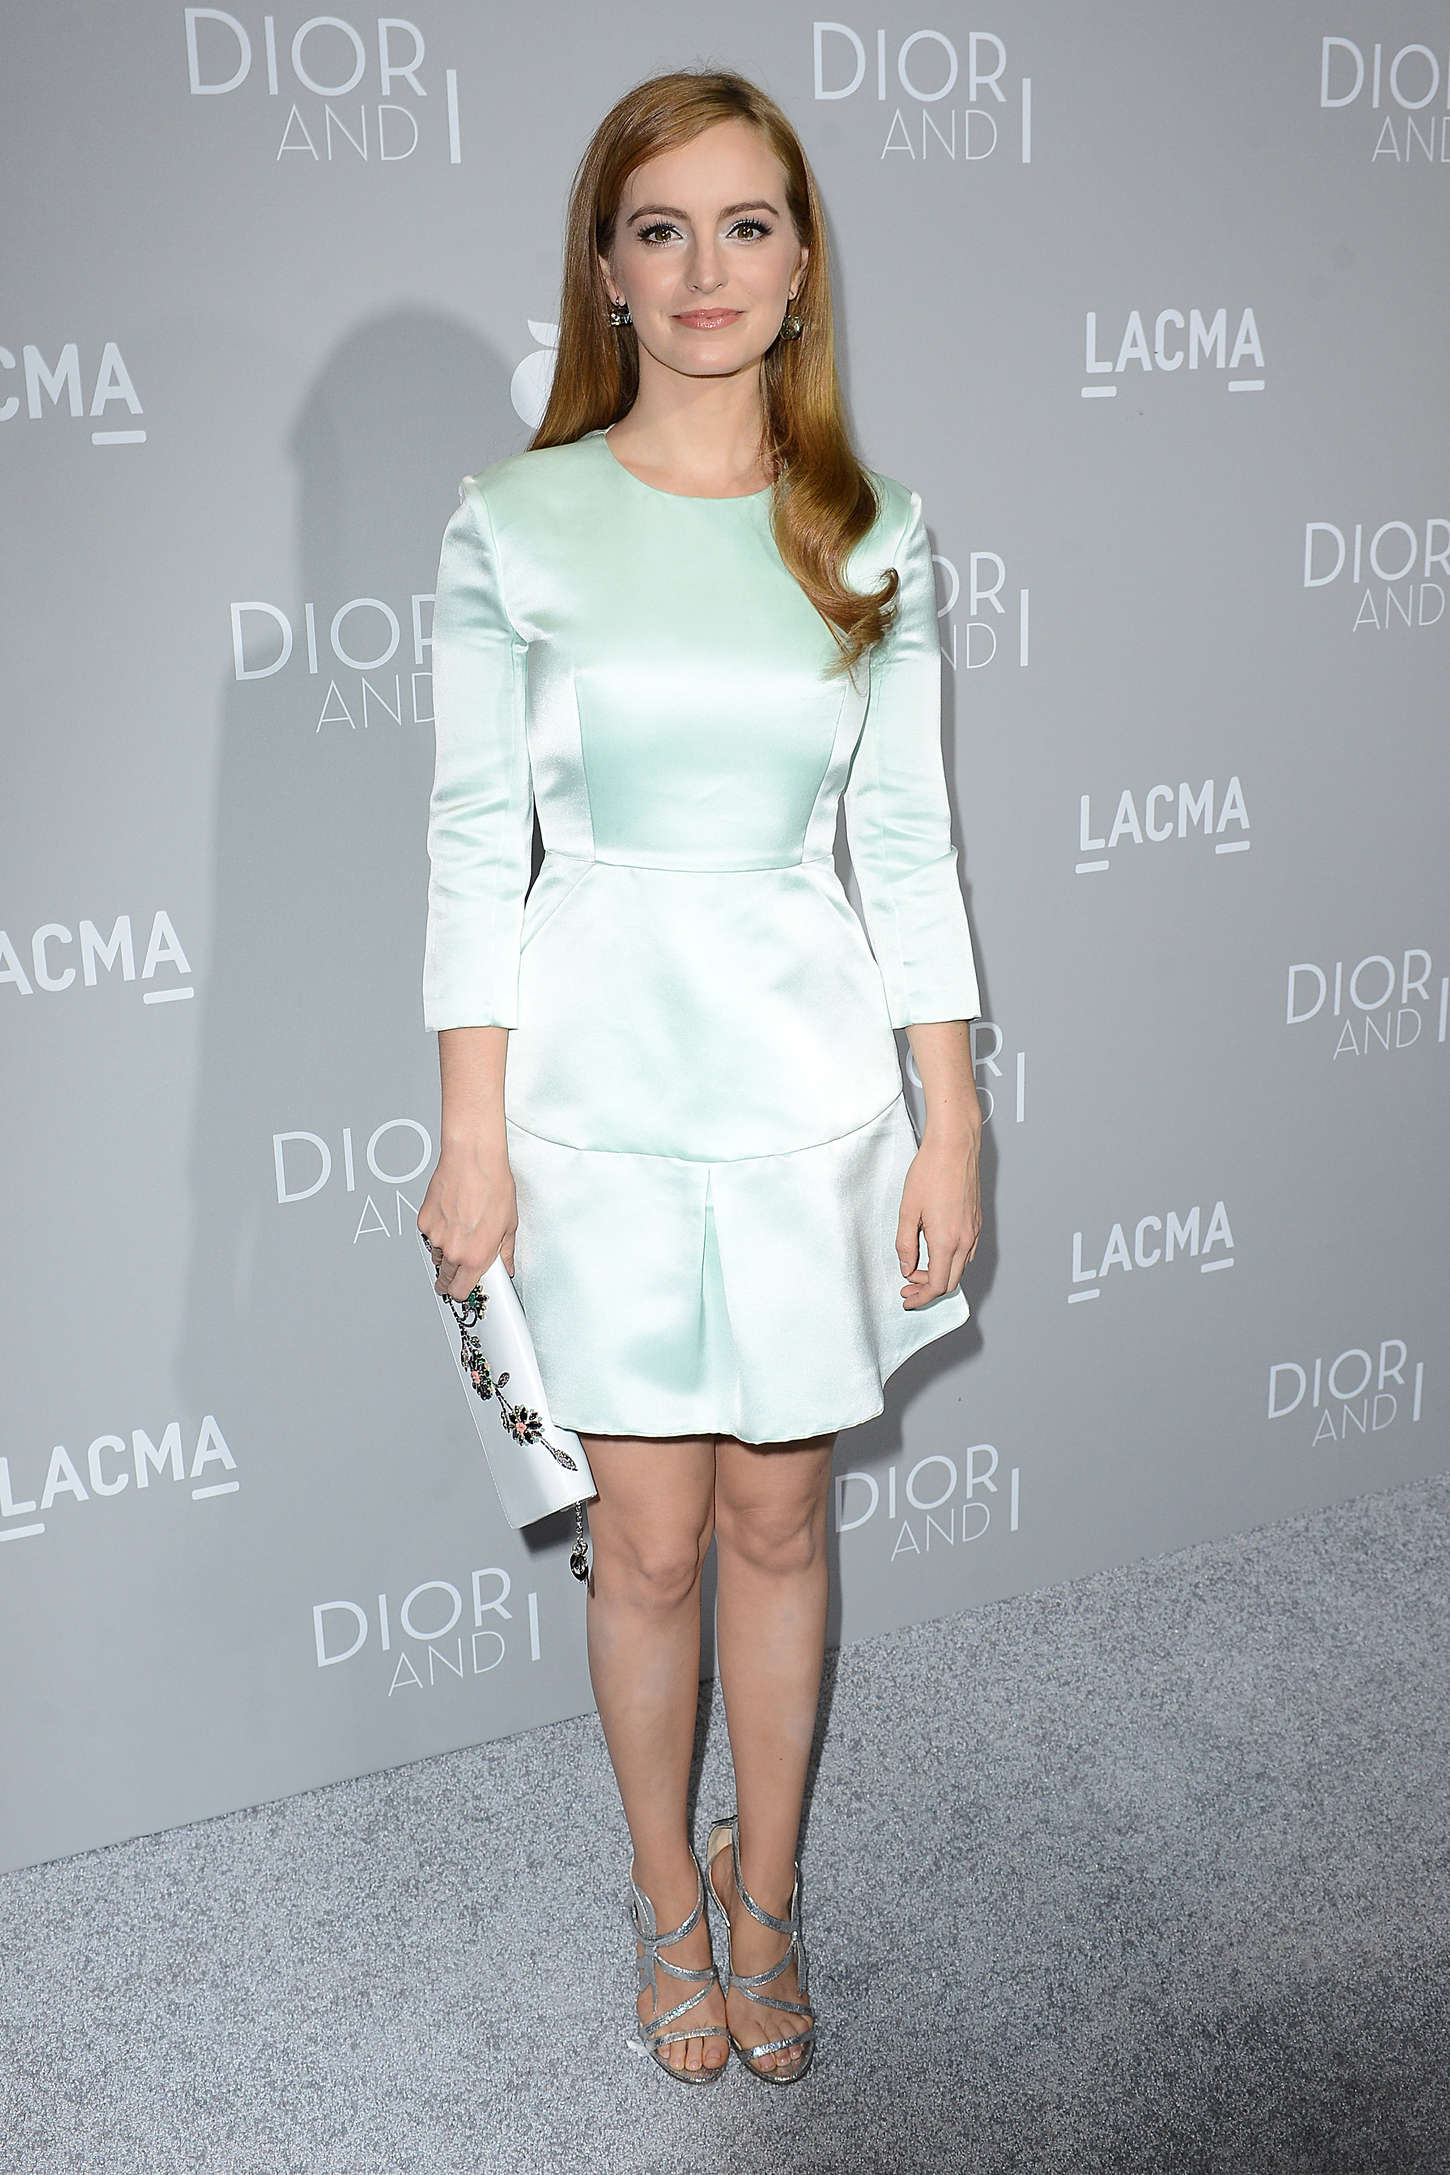 Ahna OReilly Orchard Premiere of Dior and I in Los Angeles